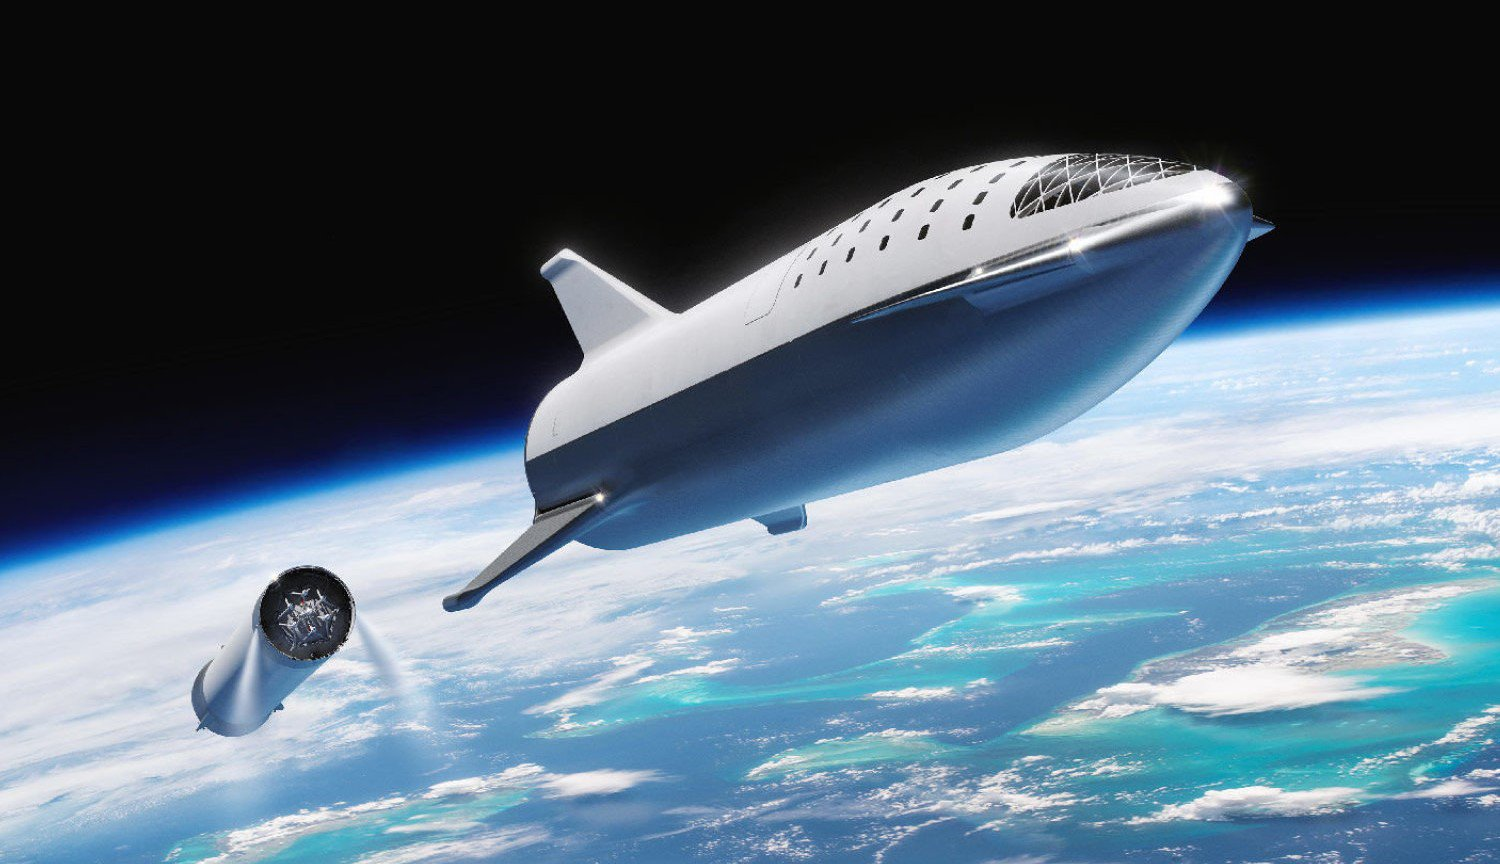 SpaceX has tested the thermal protection of spacecraft Starship